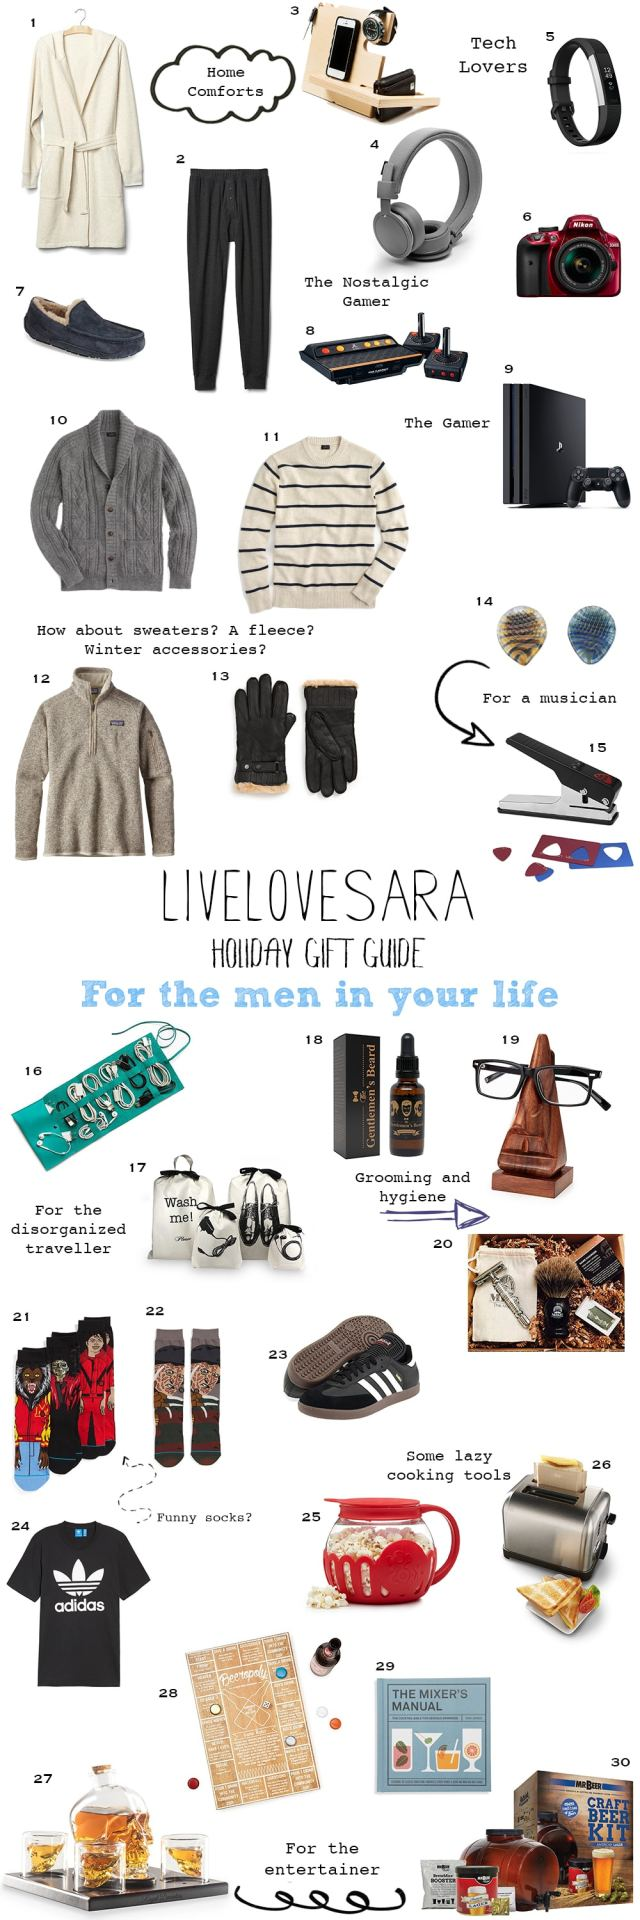 Holiday Gift Guide for Him #giftguide #giftguideforhim #holiday2017 #giftguides #giftideas